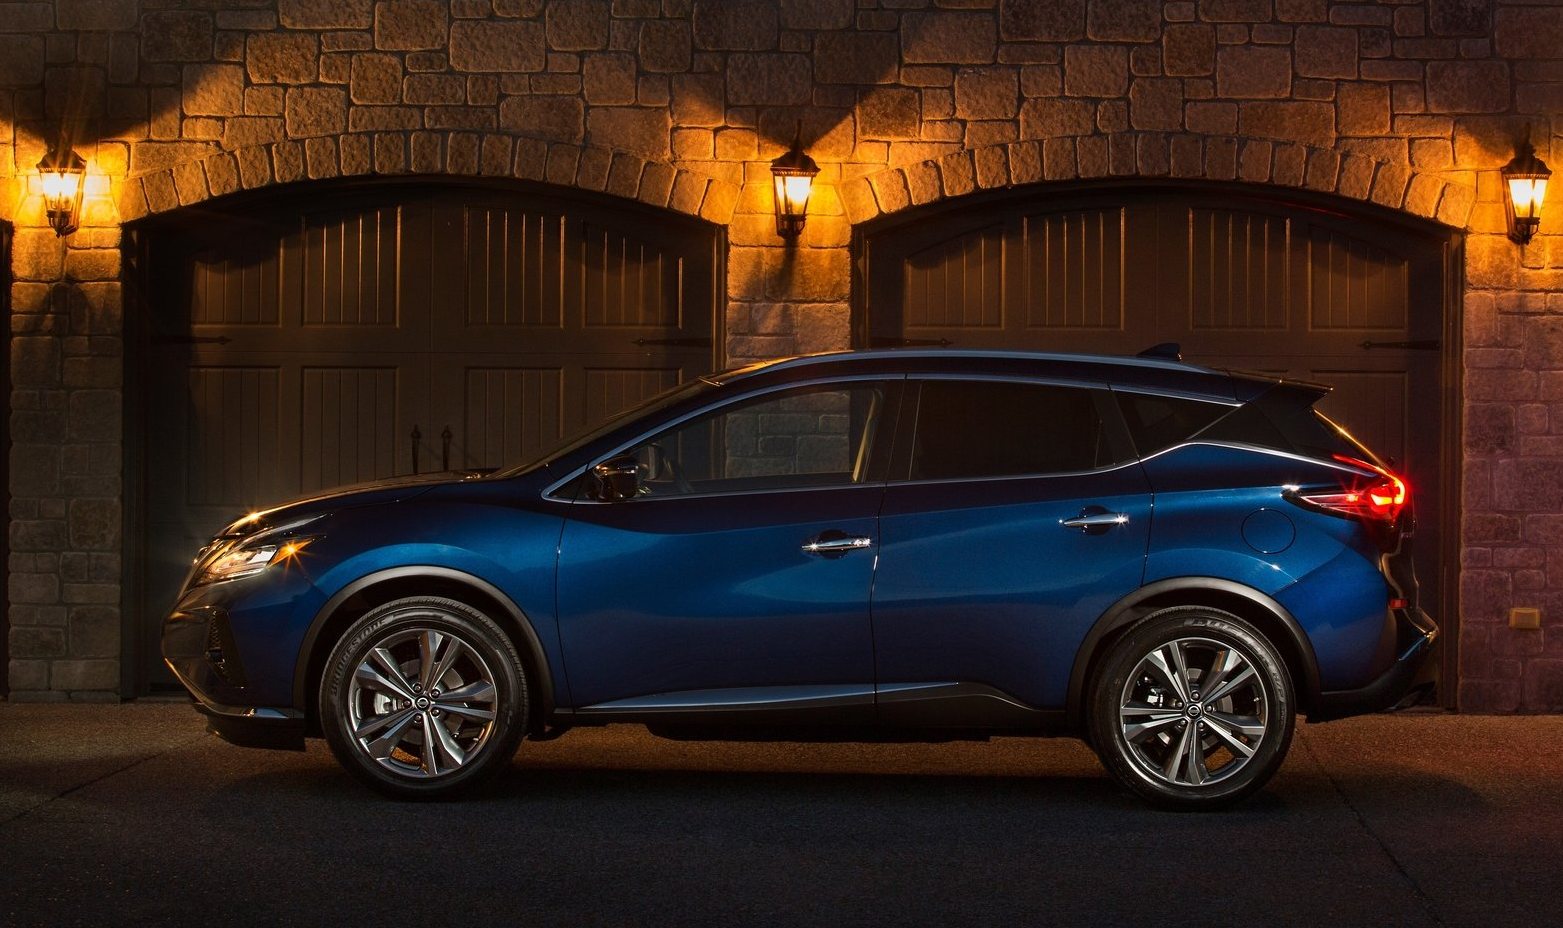 Nissan Announces Pricing for the 2019 Murano